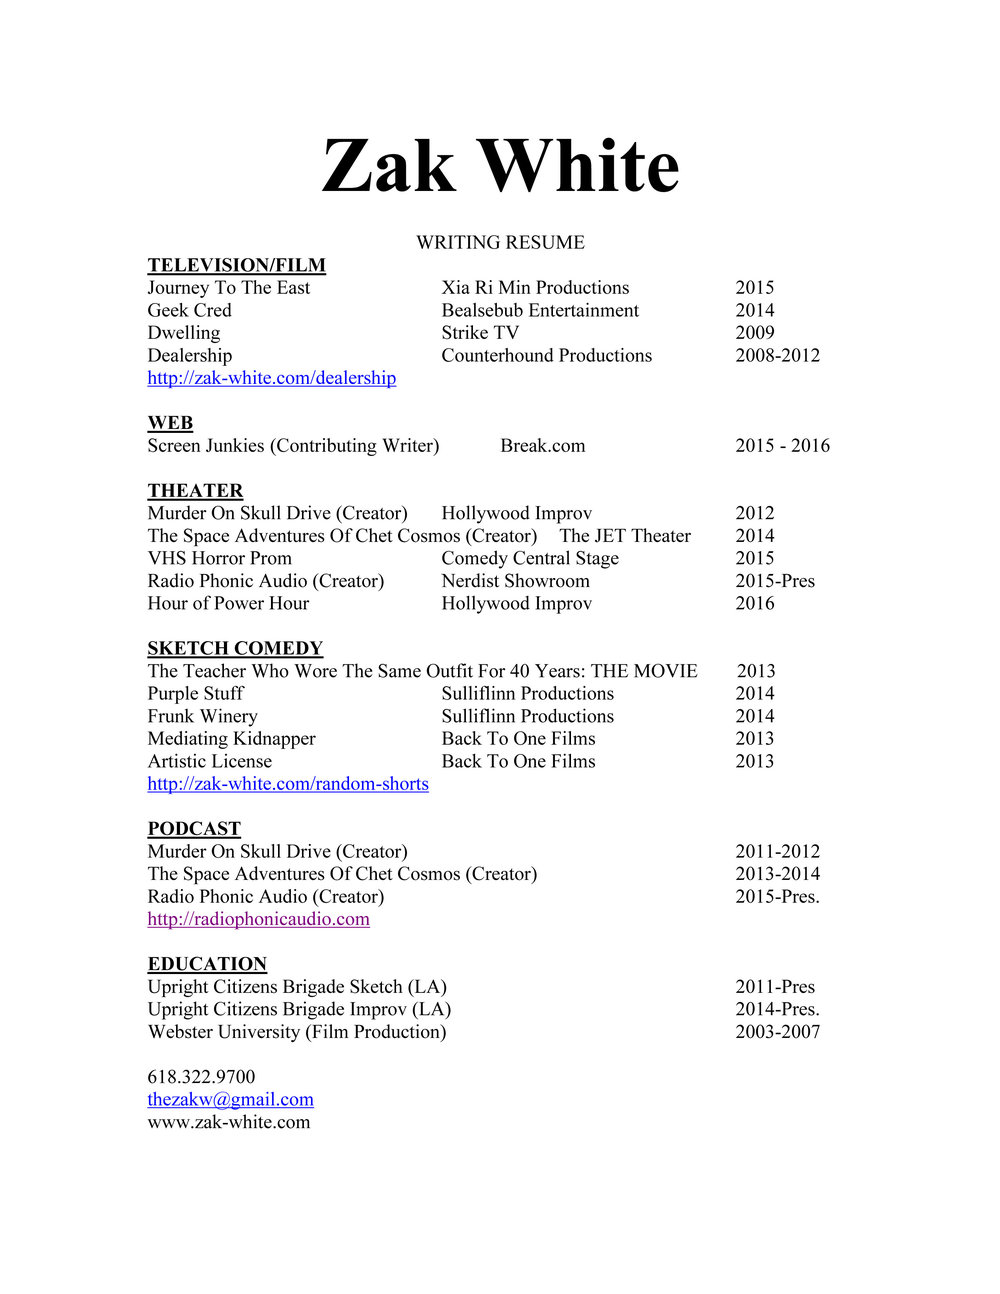 Zak White Writer Resume.jpg